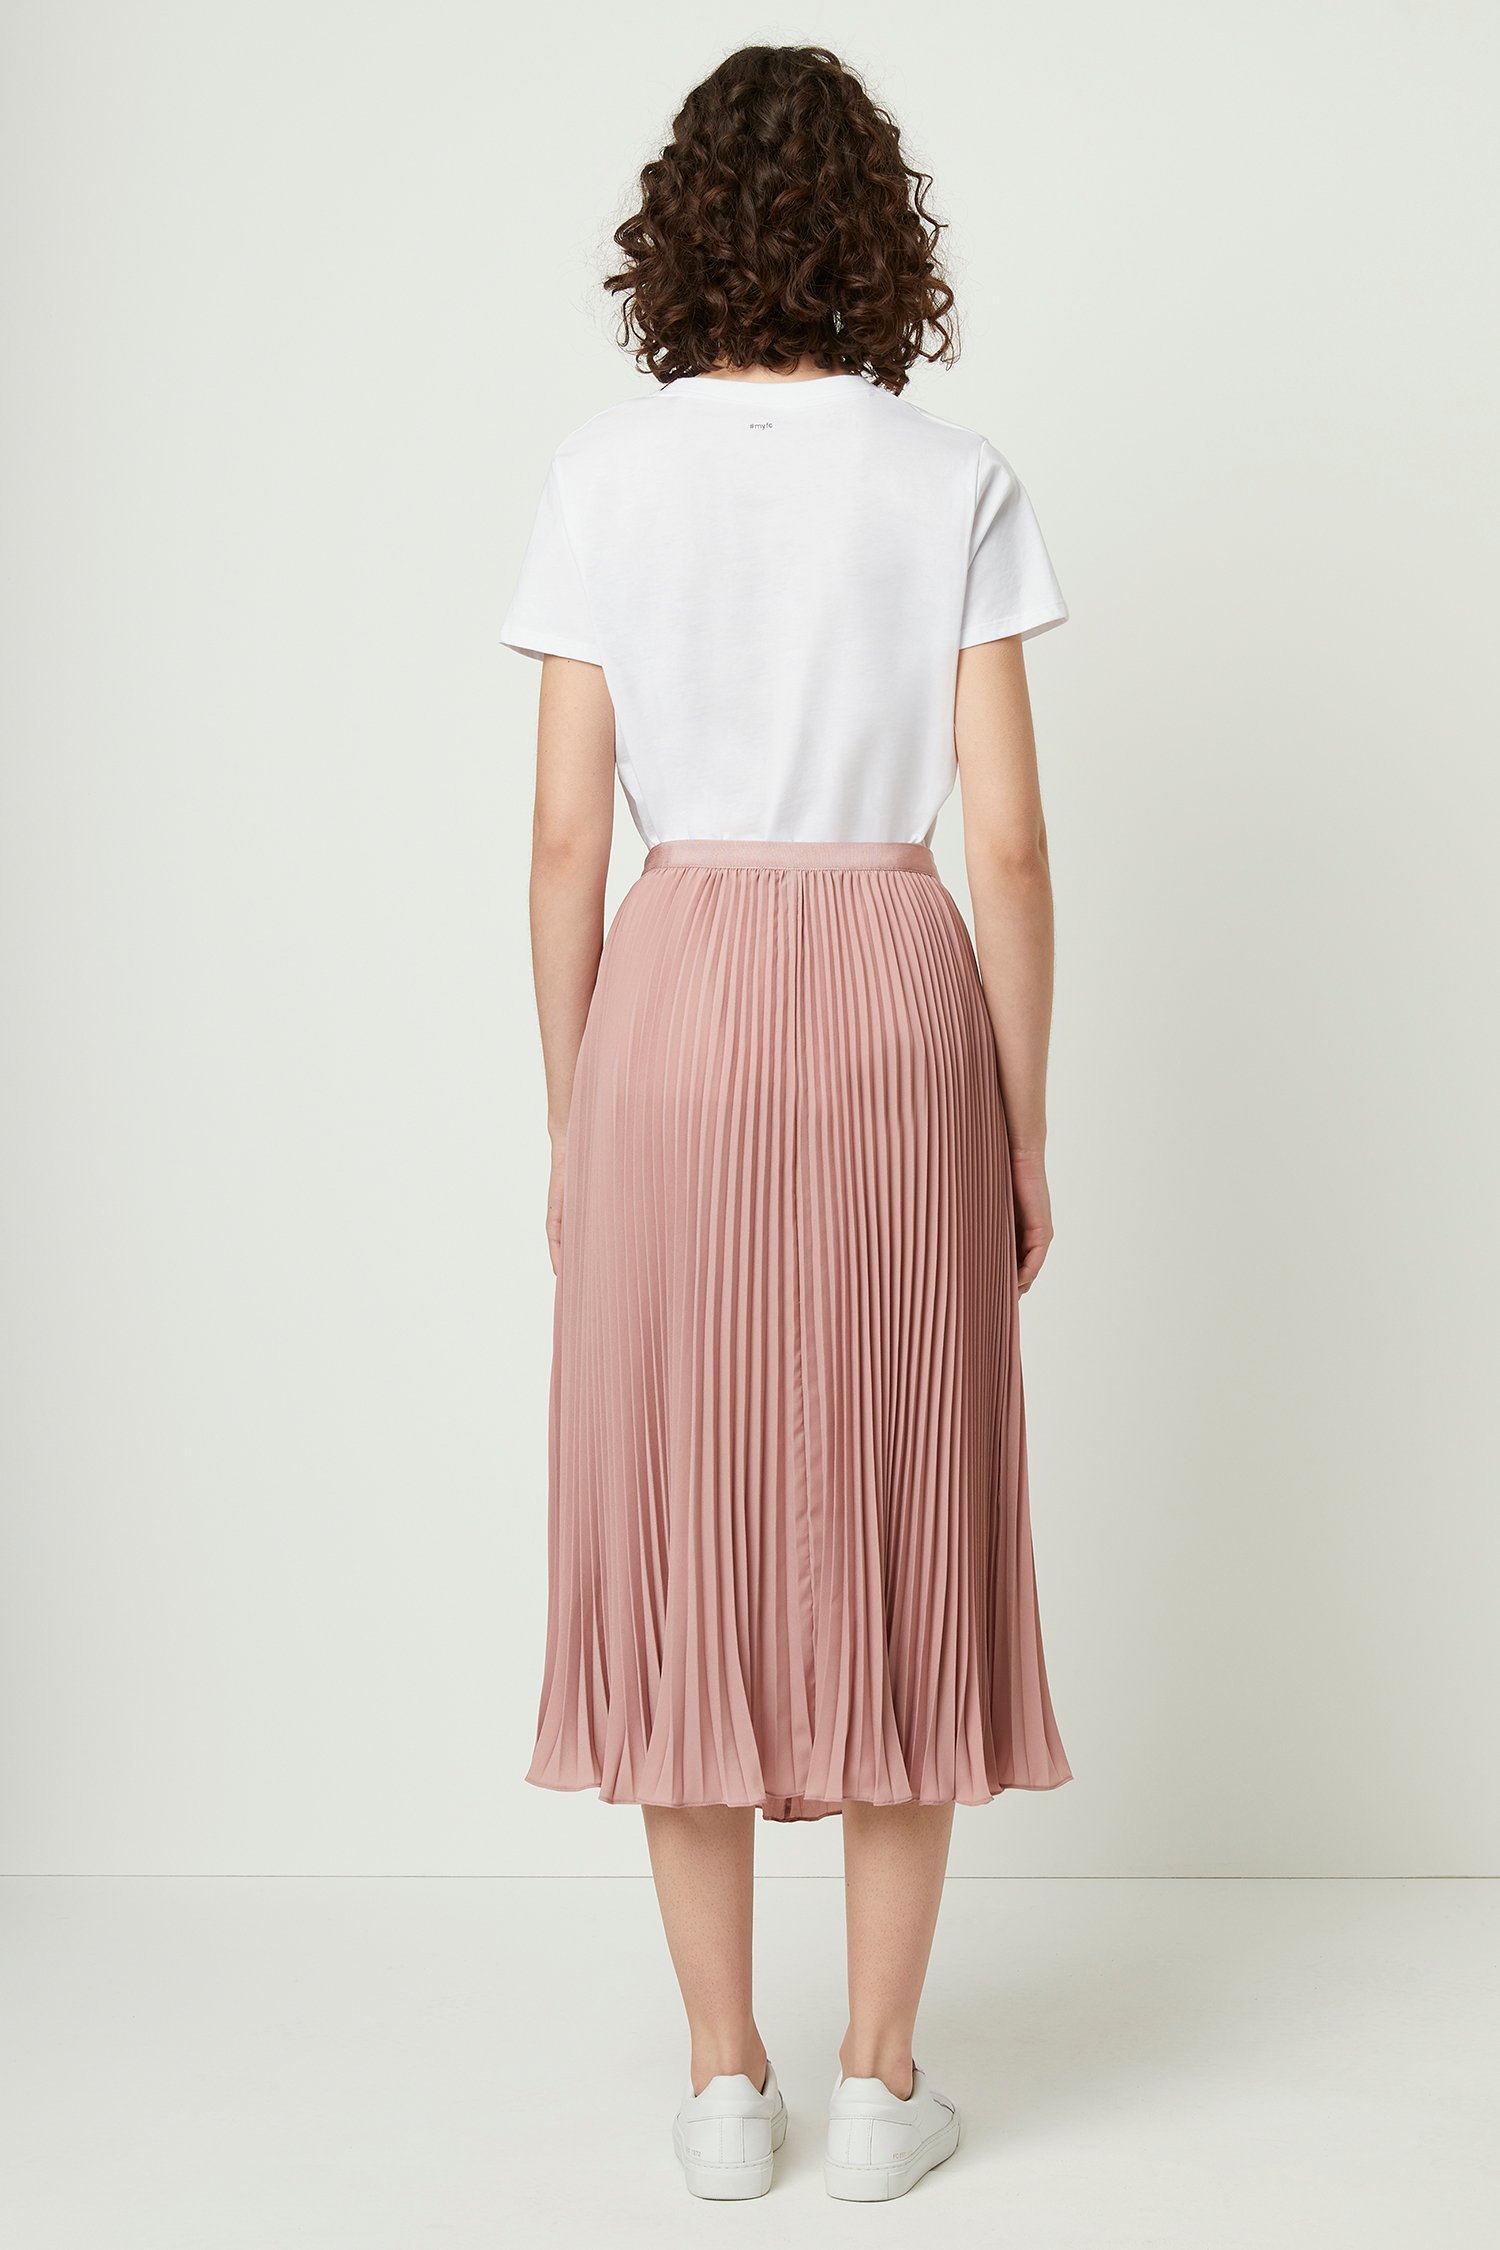 search for latest fashionablestyle order Crepe Light Pleated Midi Skirt